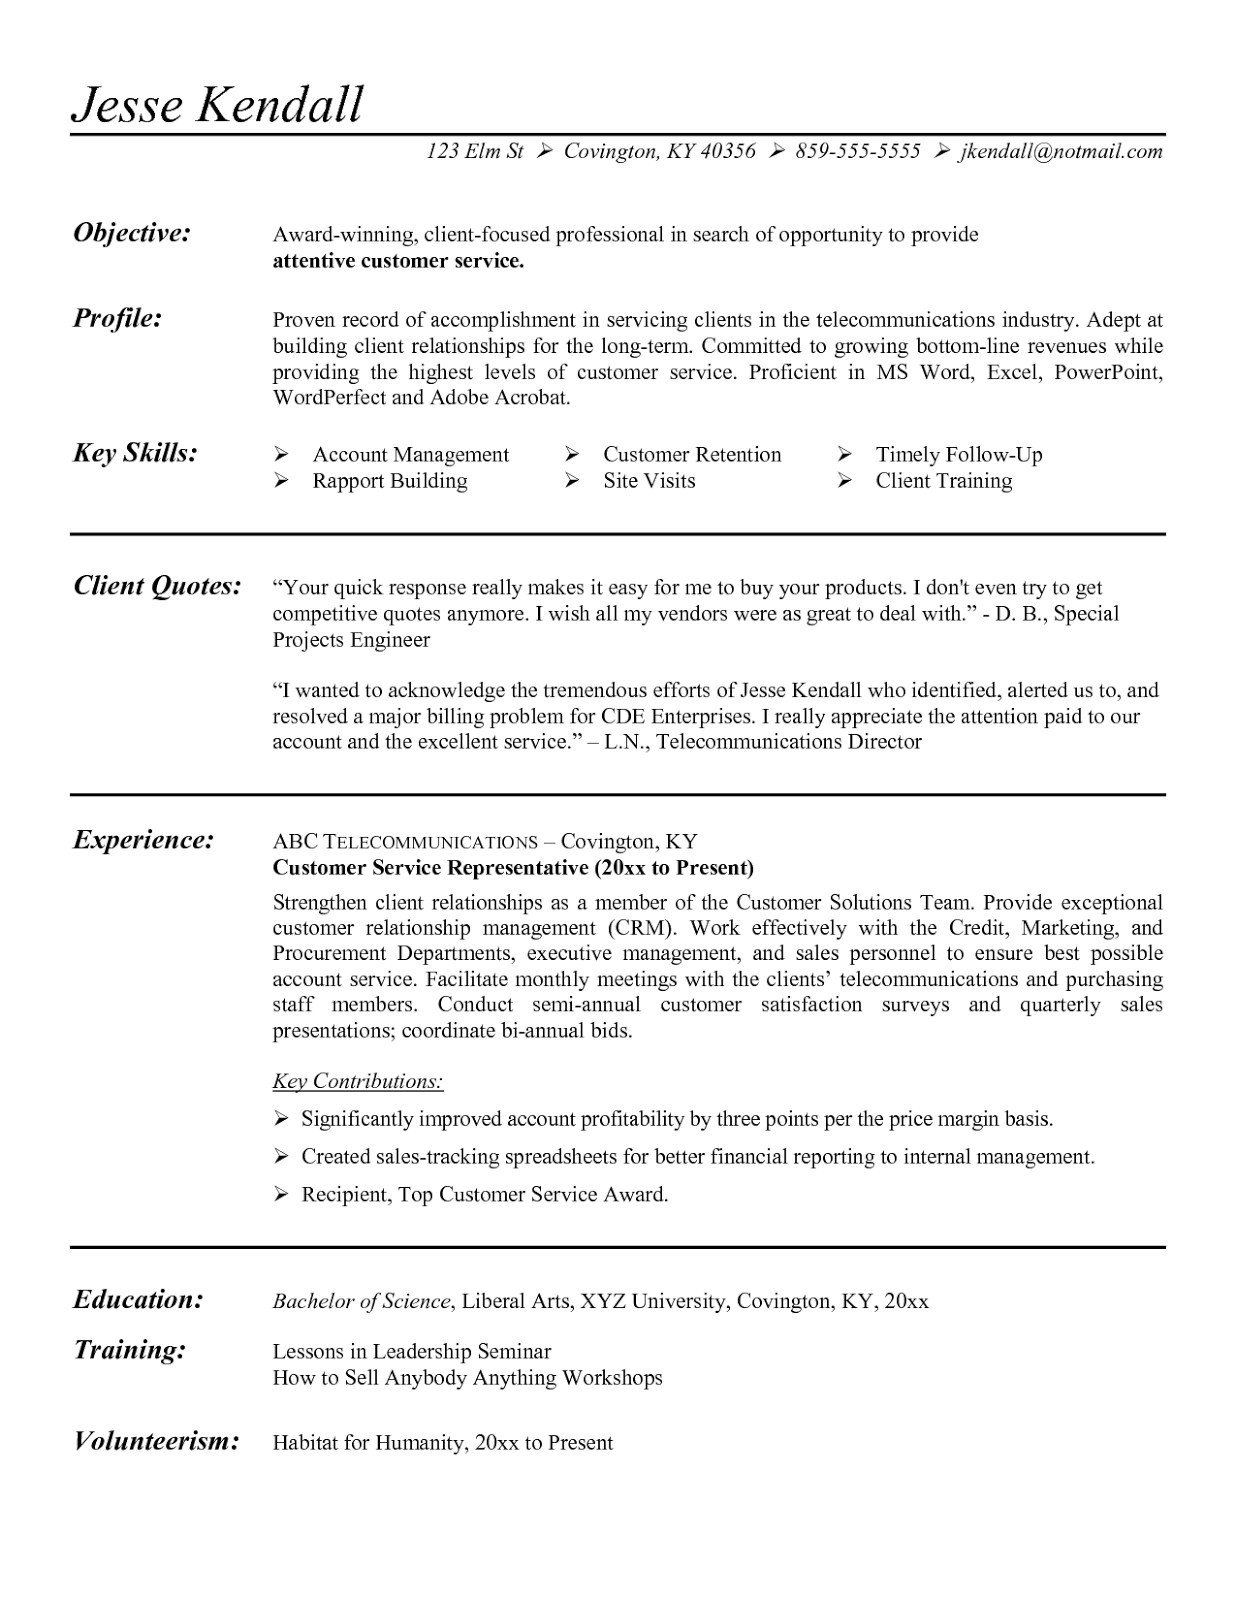 Example Of Customer Service Resume - Customer Service Resume Example Best Beautiful Grapher Resume